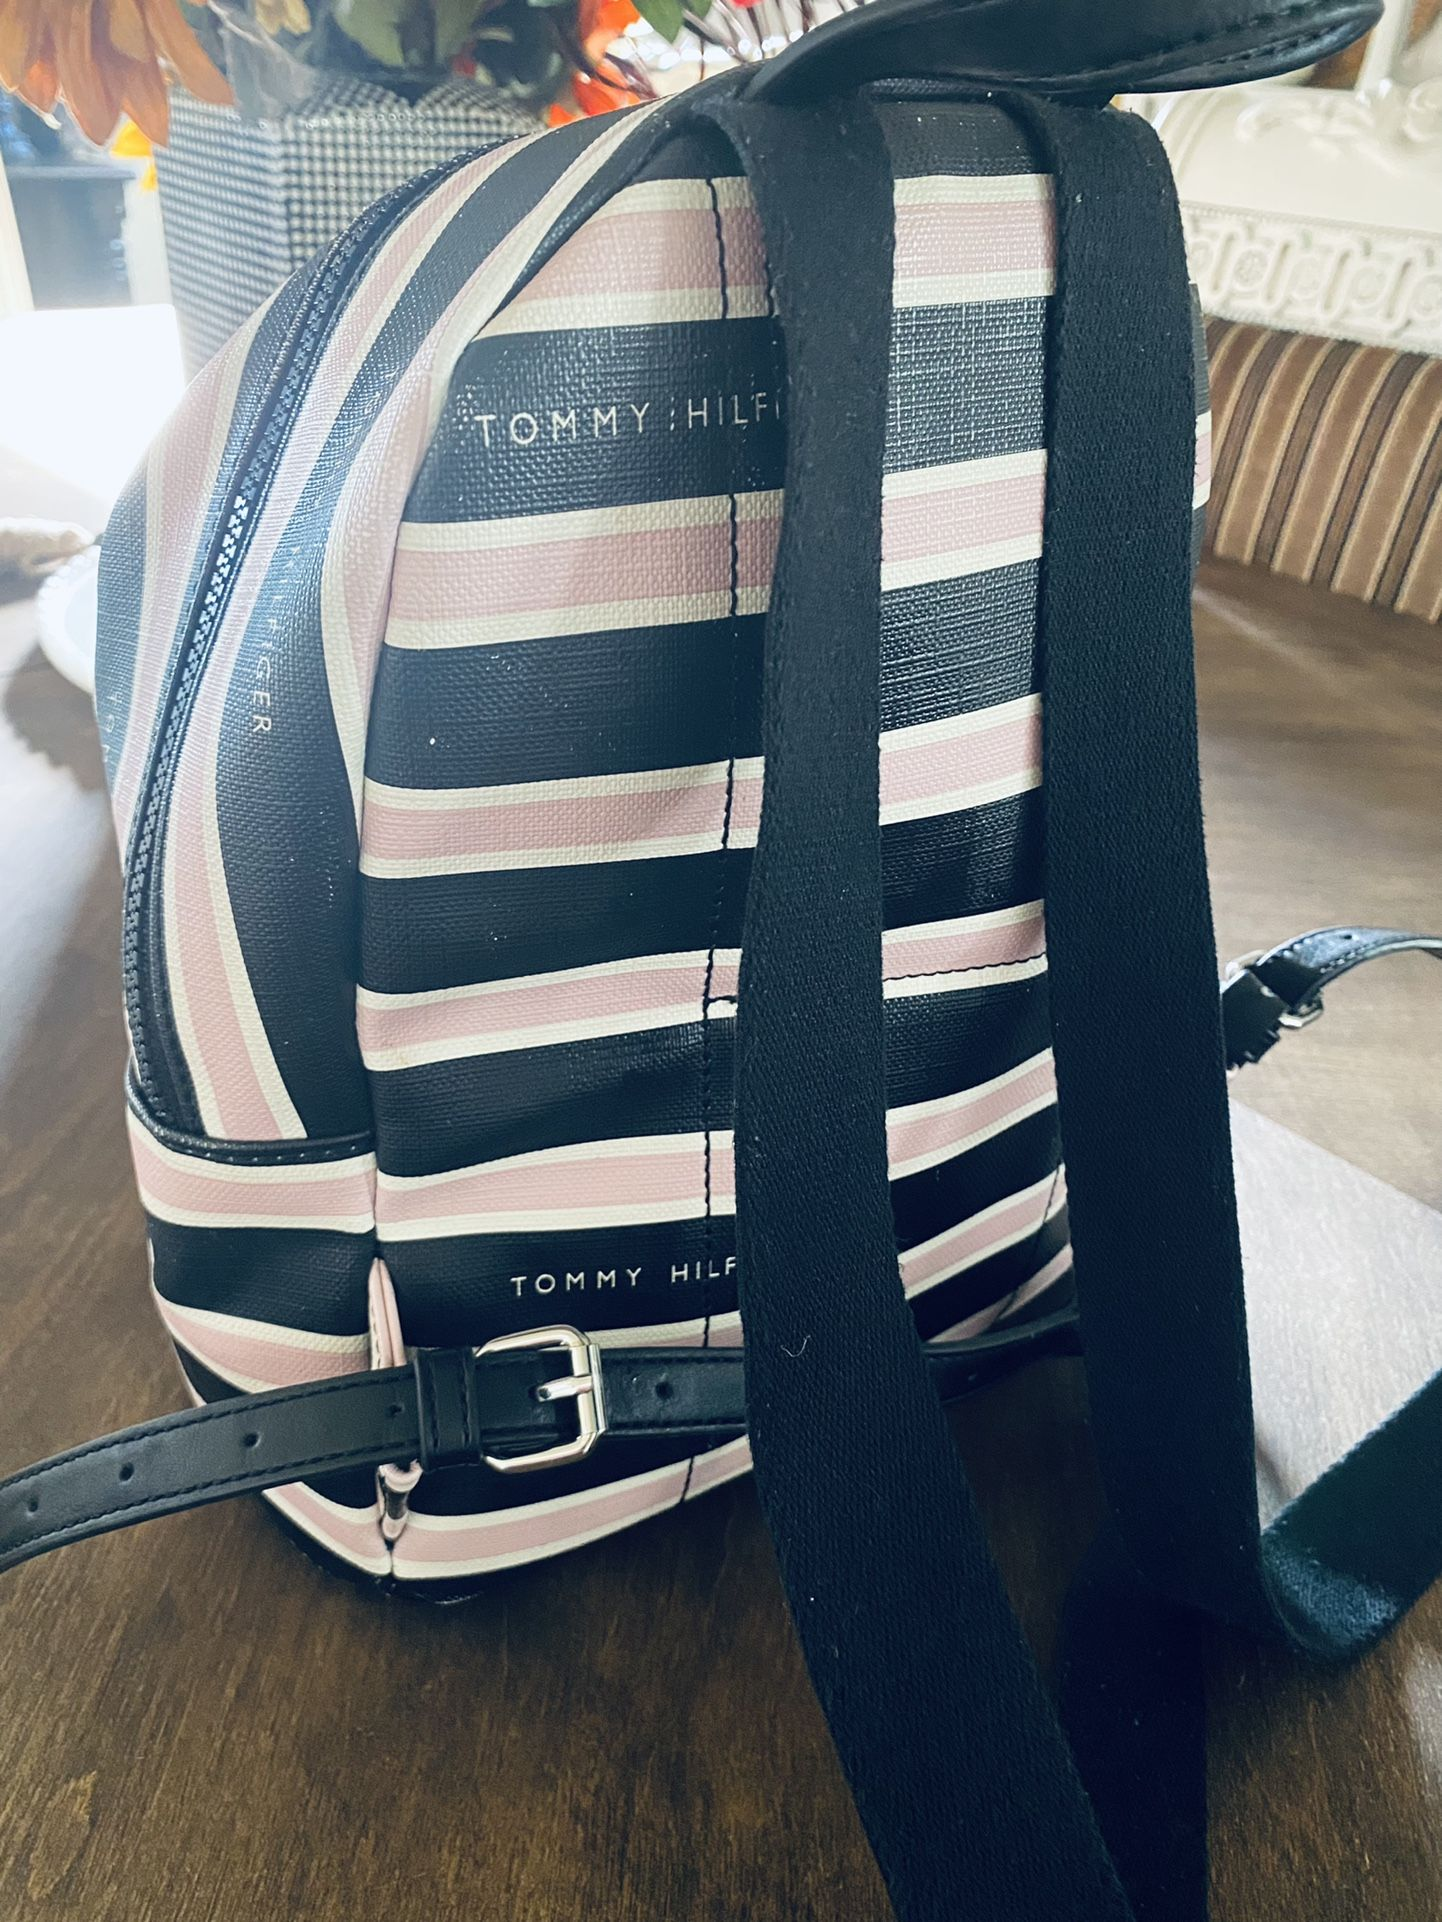 Tommy Hilfiger Small Backpack Purse